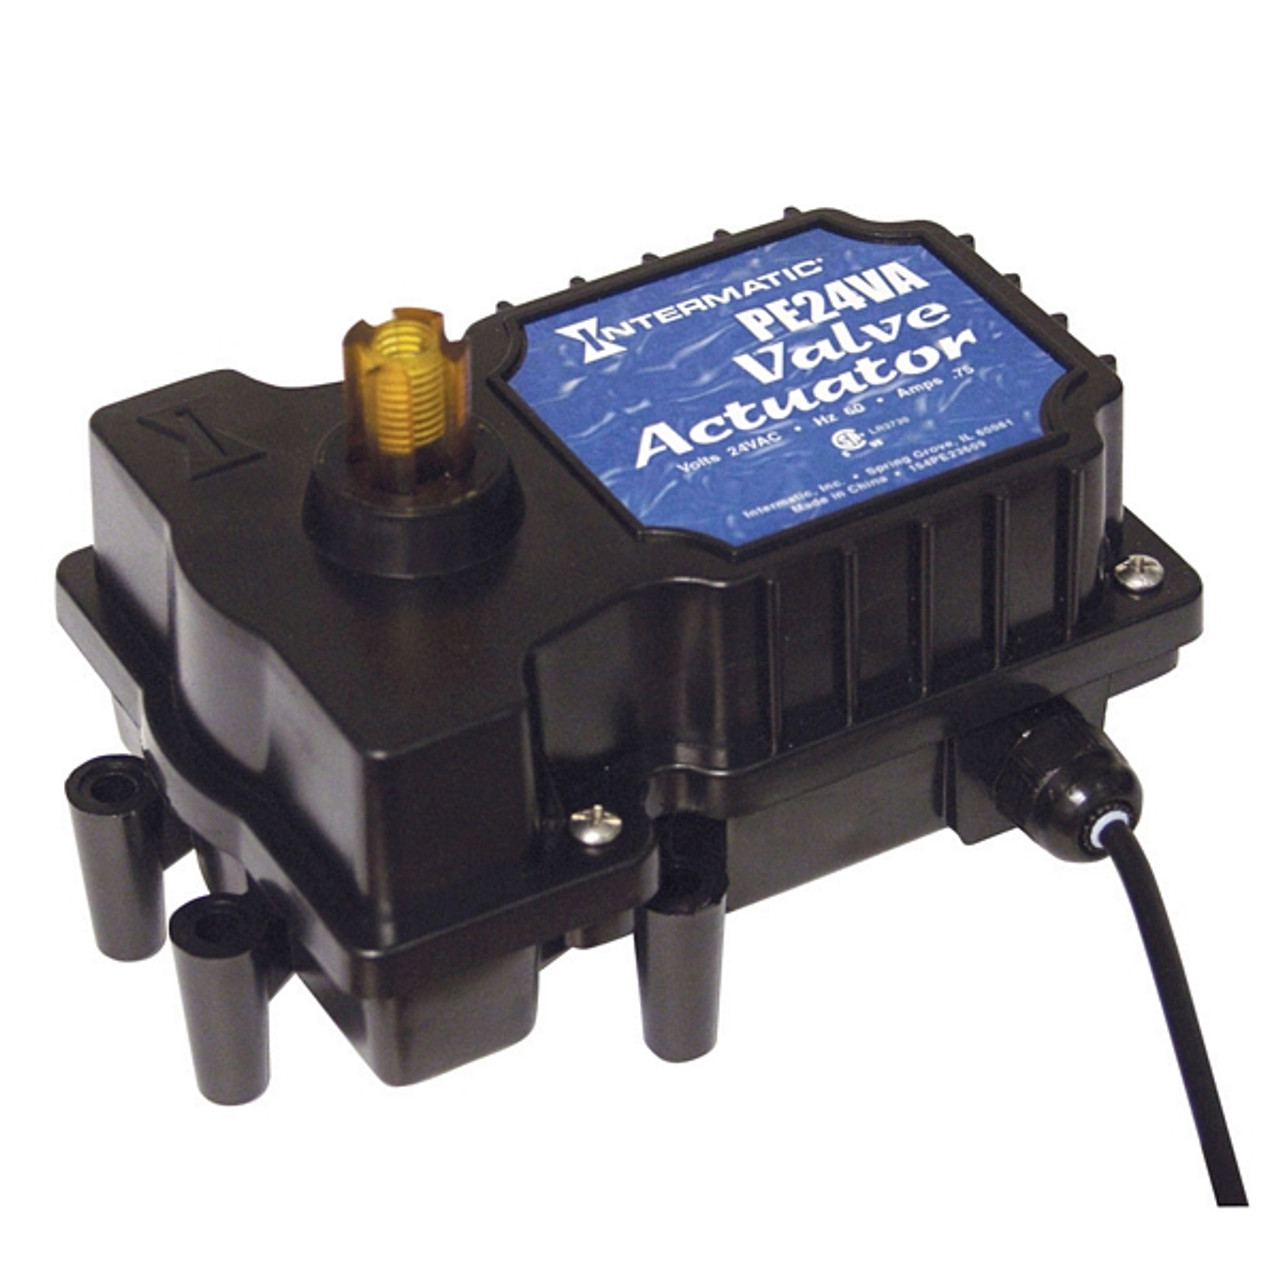 Wireless Control System 24VAC Motorized Valve Actuator